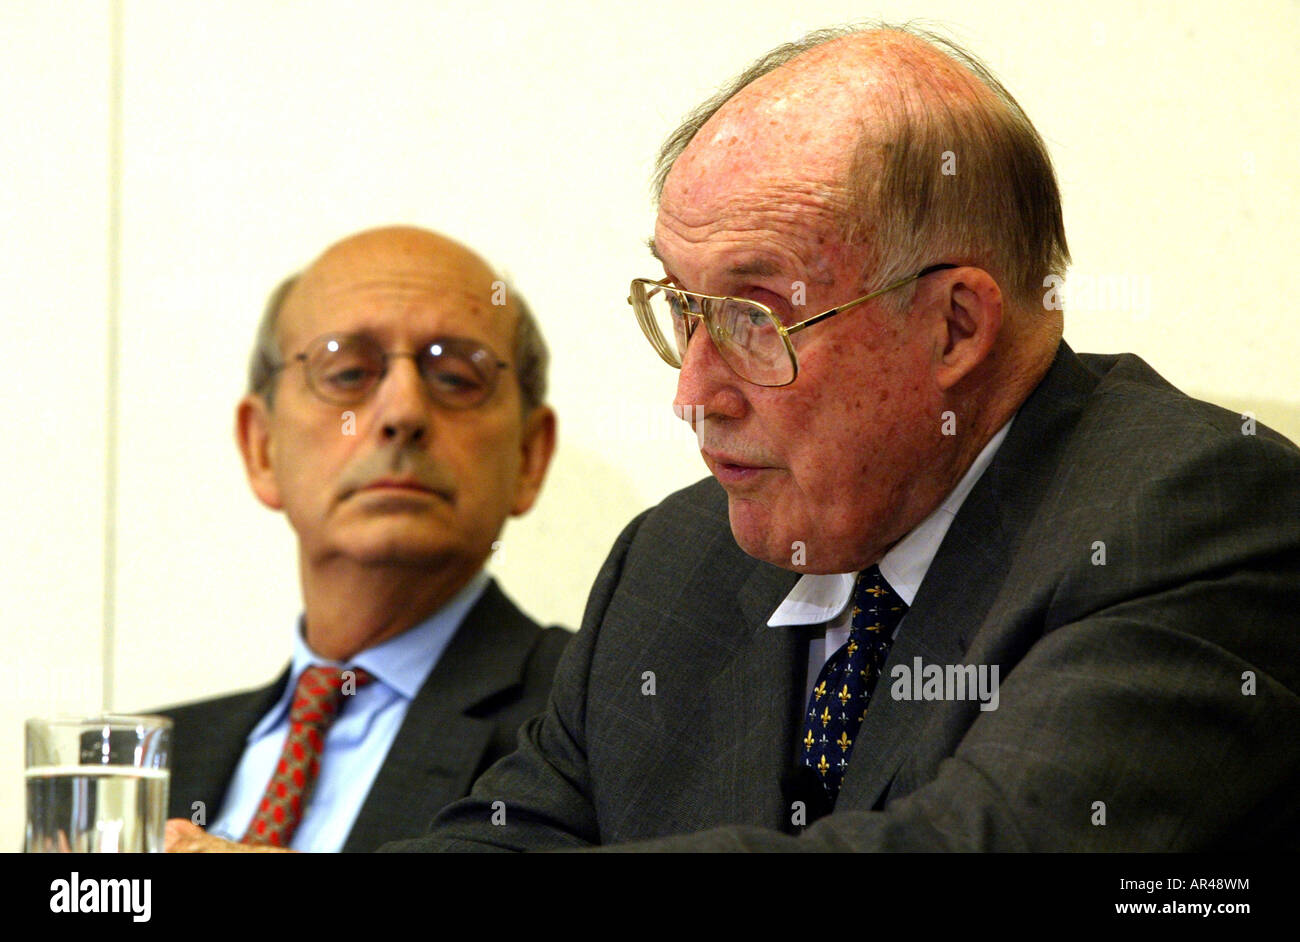 Washington, DC 7/15/02  Supreme Court Chief Justice William Rehnquist with Associate Justice Stephen Breyer in background. - Stock Image